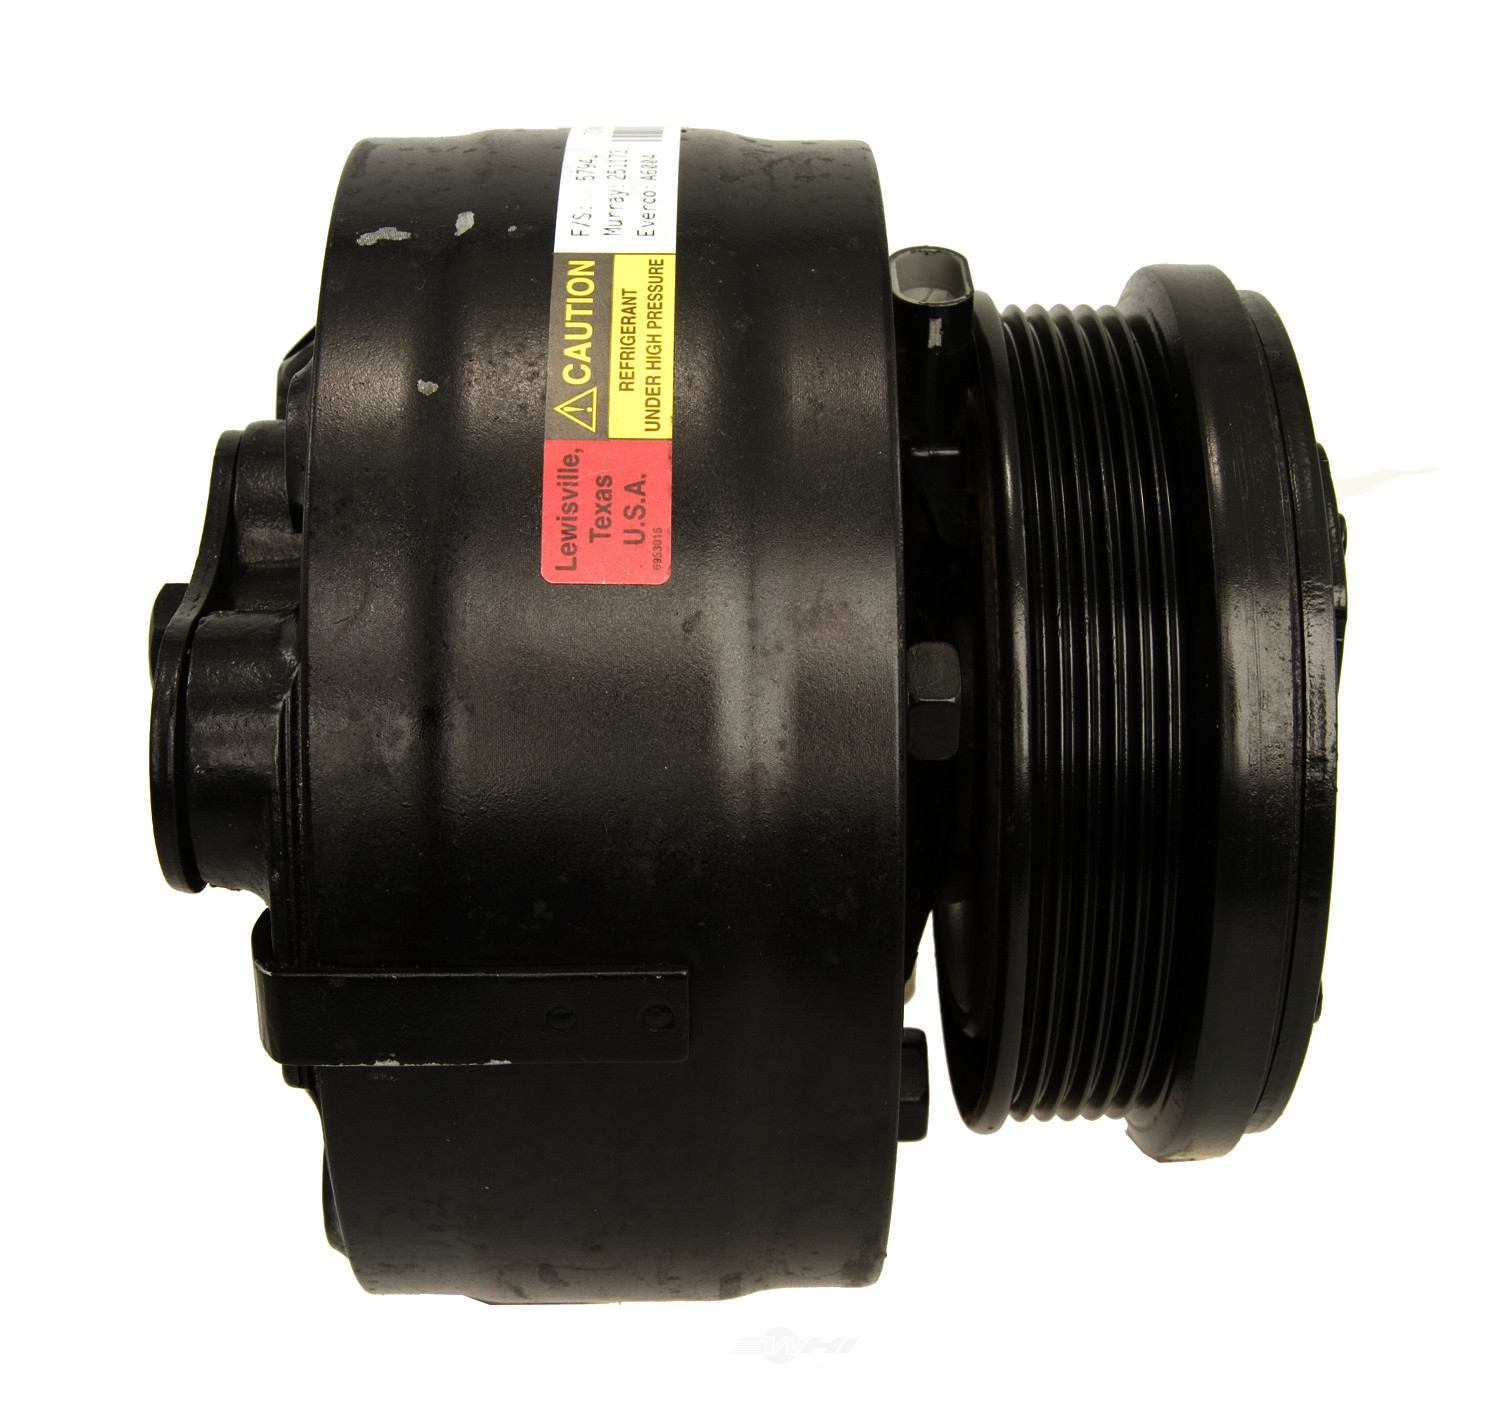 ACDELCO PROFESSIONAL - Remanufactured A/C Compressor - DCC 15-21736